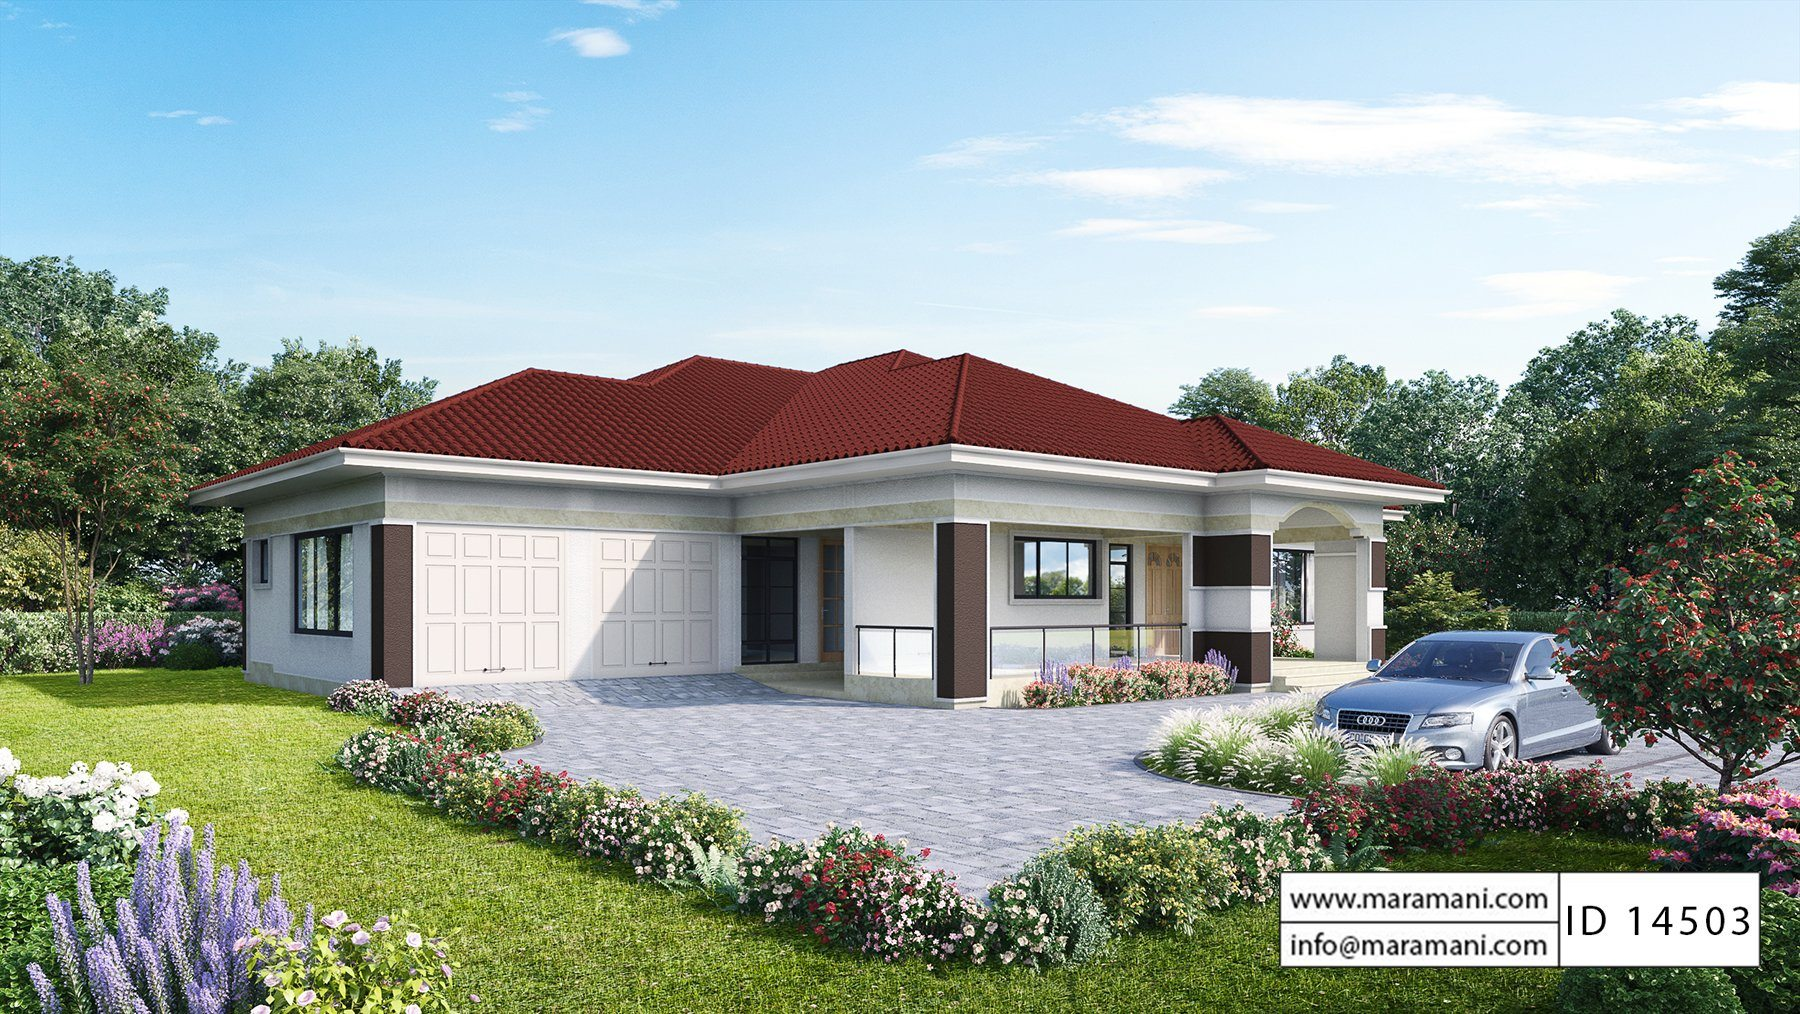 4 room house plan id 14503 house by maramani for Idaho house plans